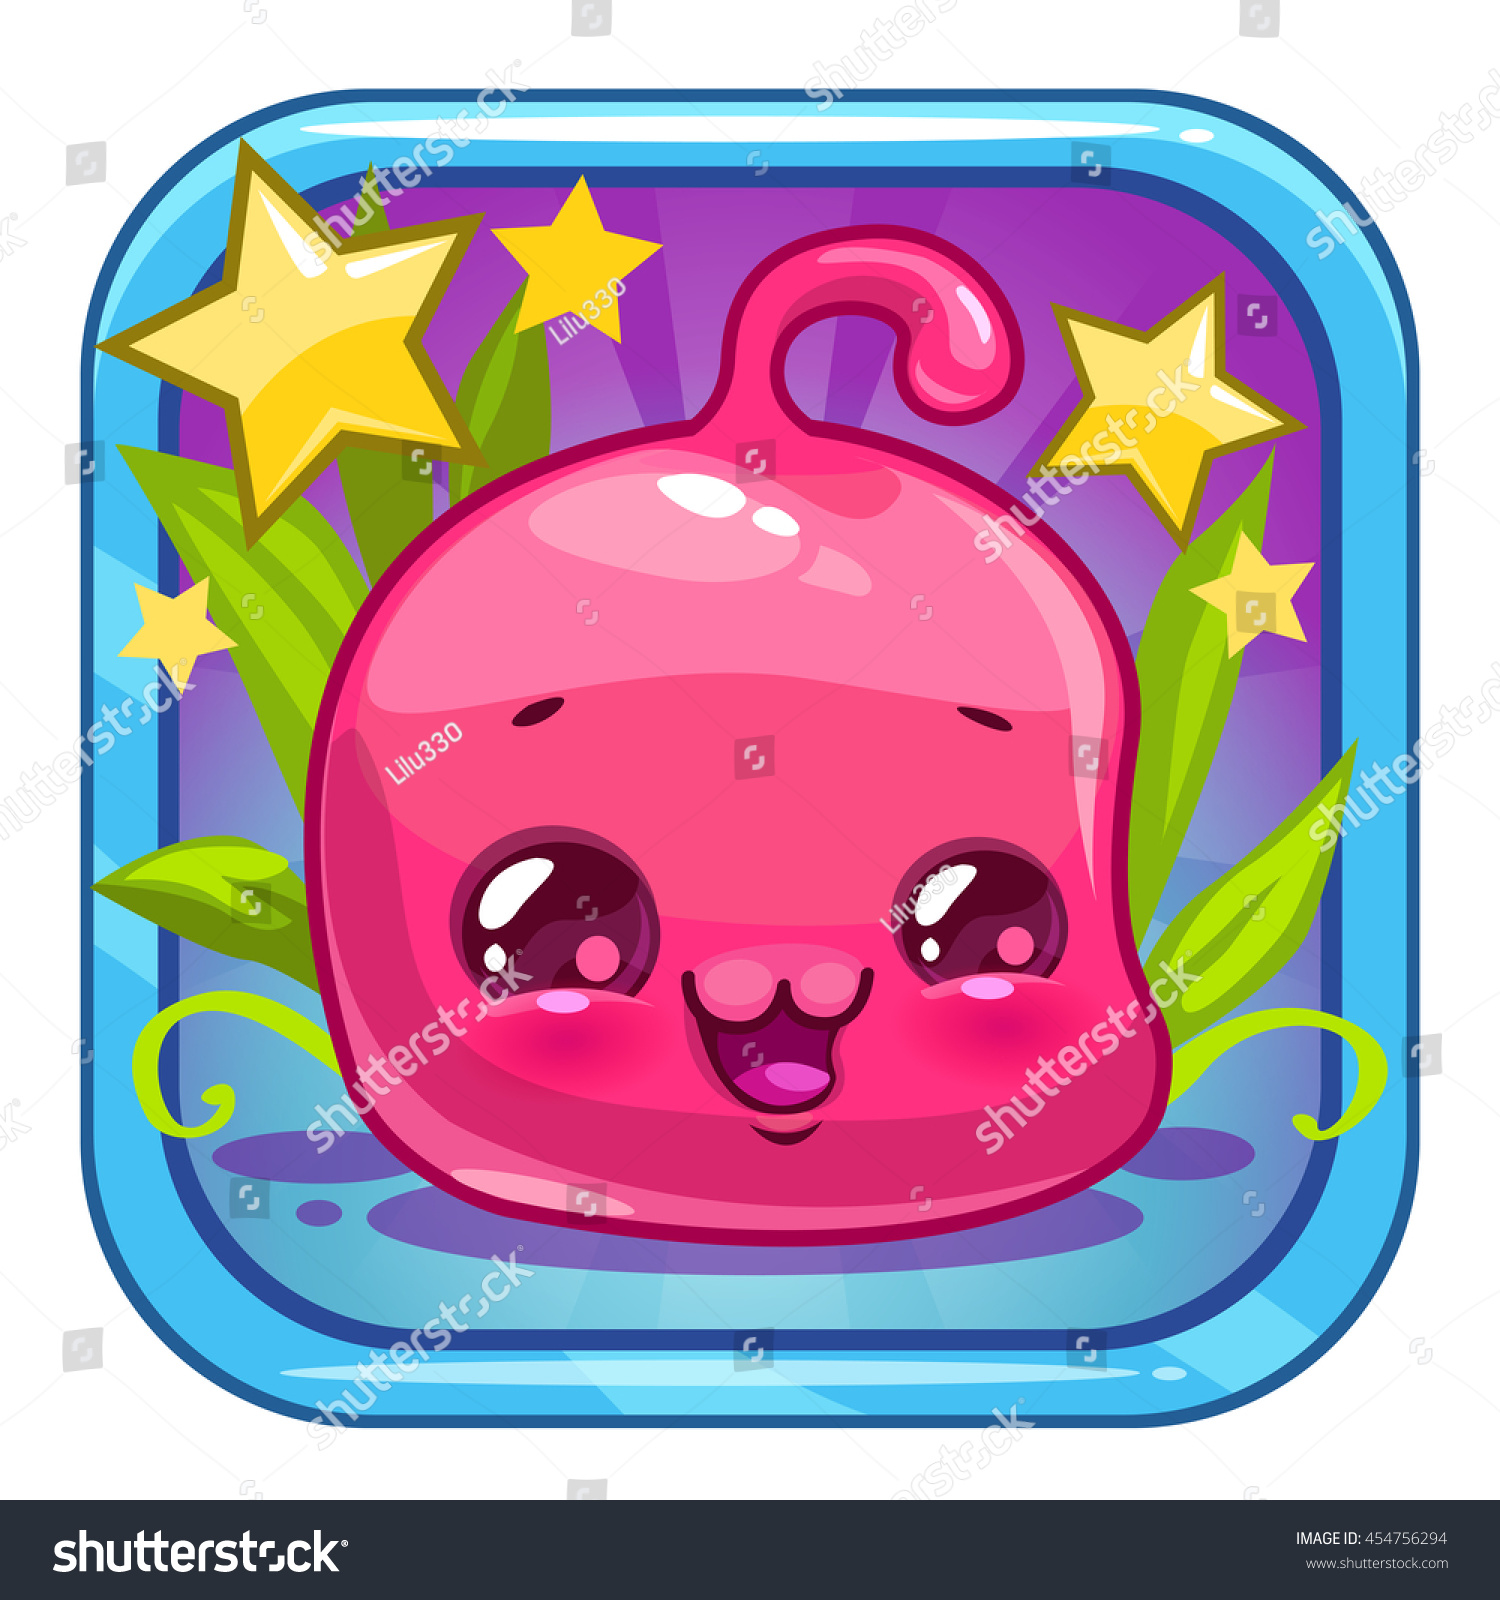 funny jelly alien character cute square stock vector 454756294